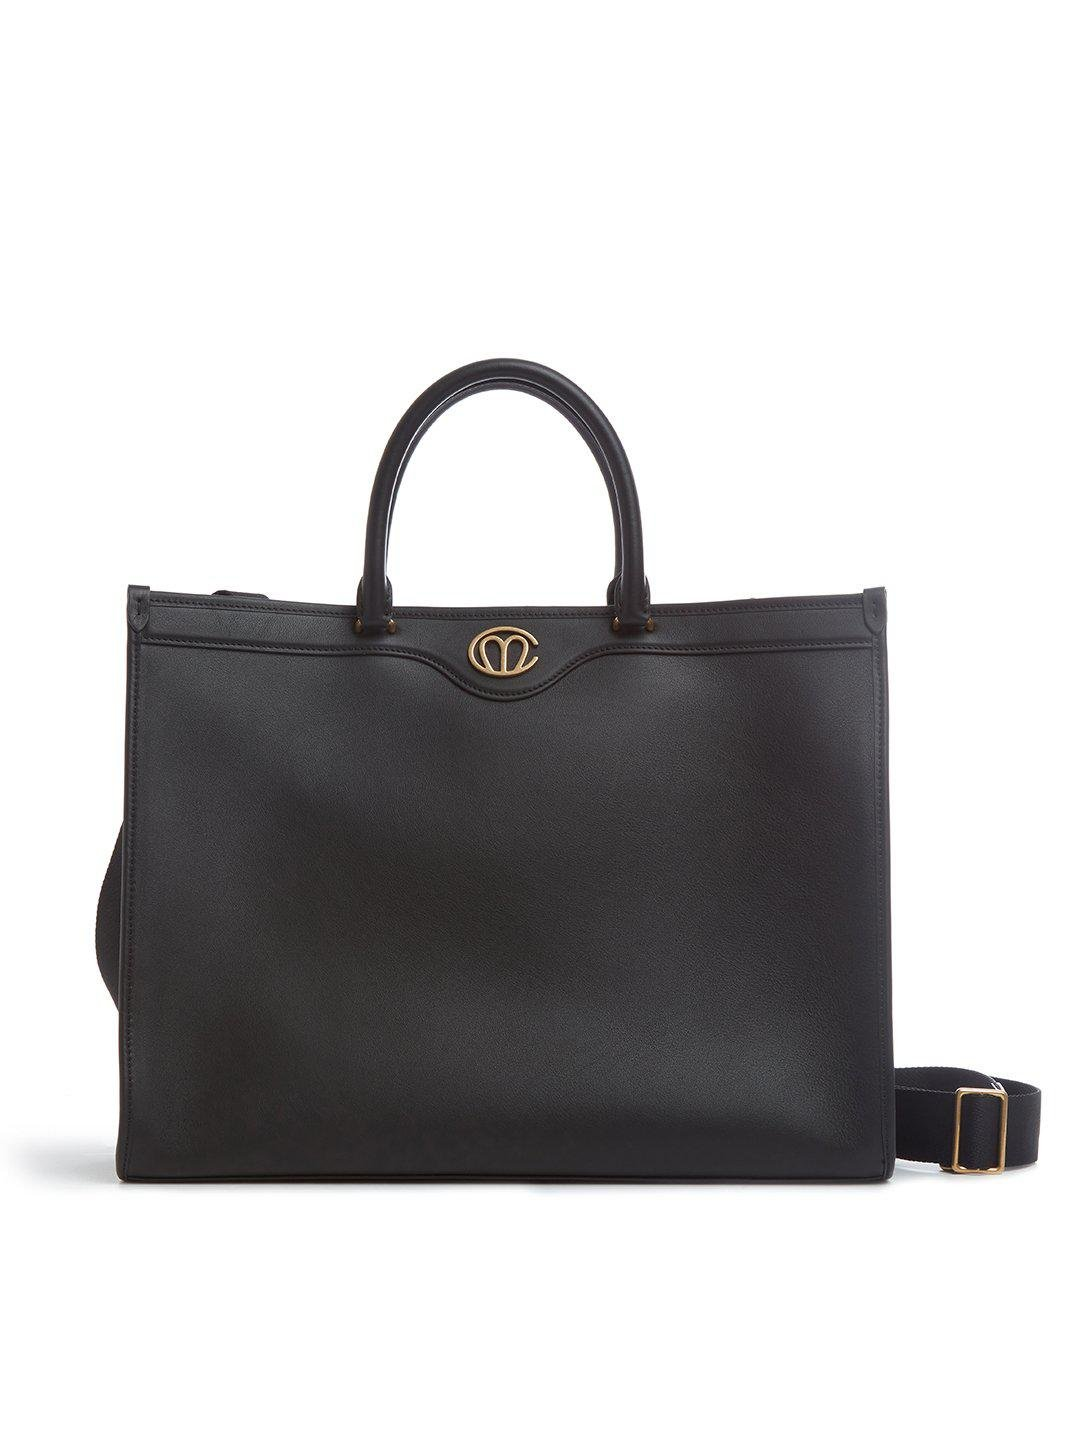 Christy East West Leather Tote Bag